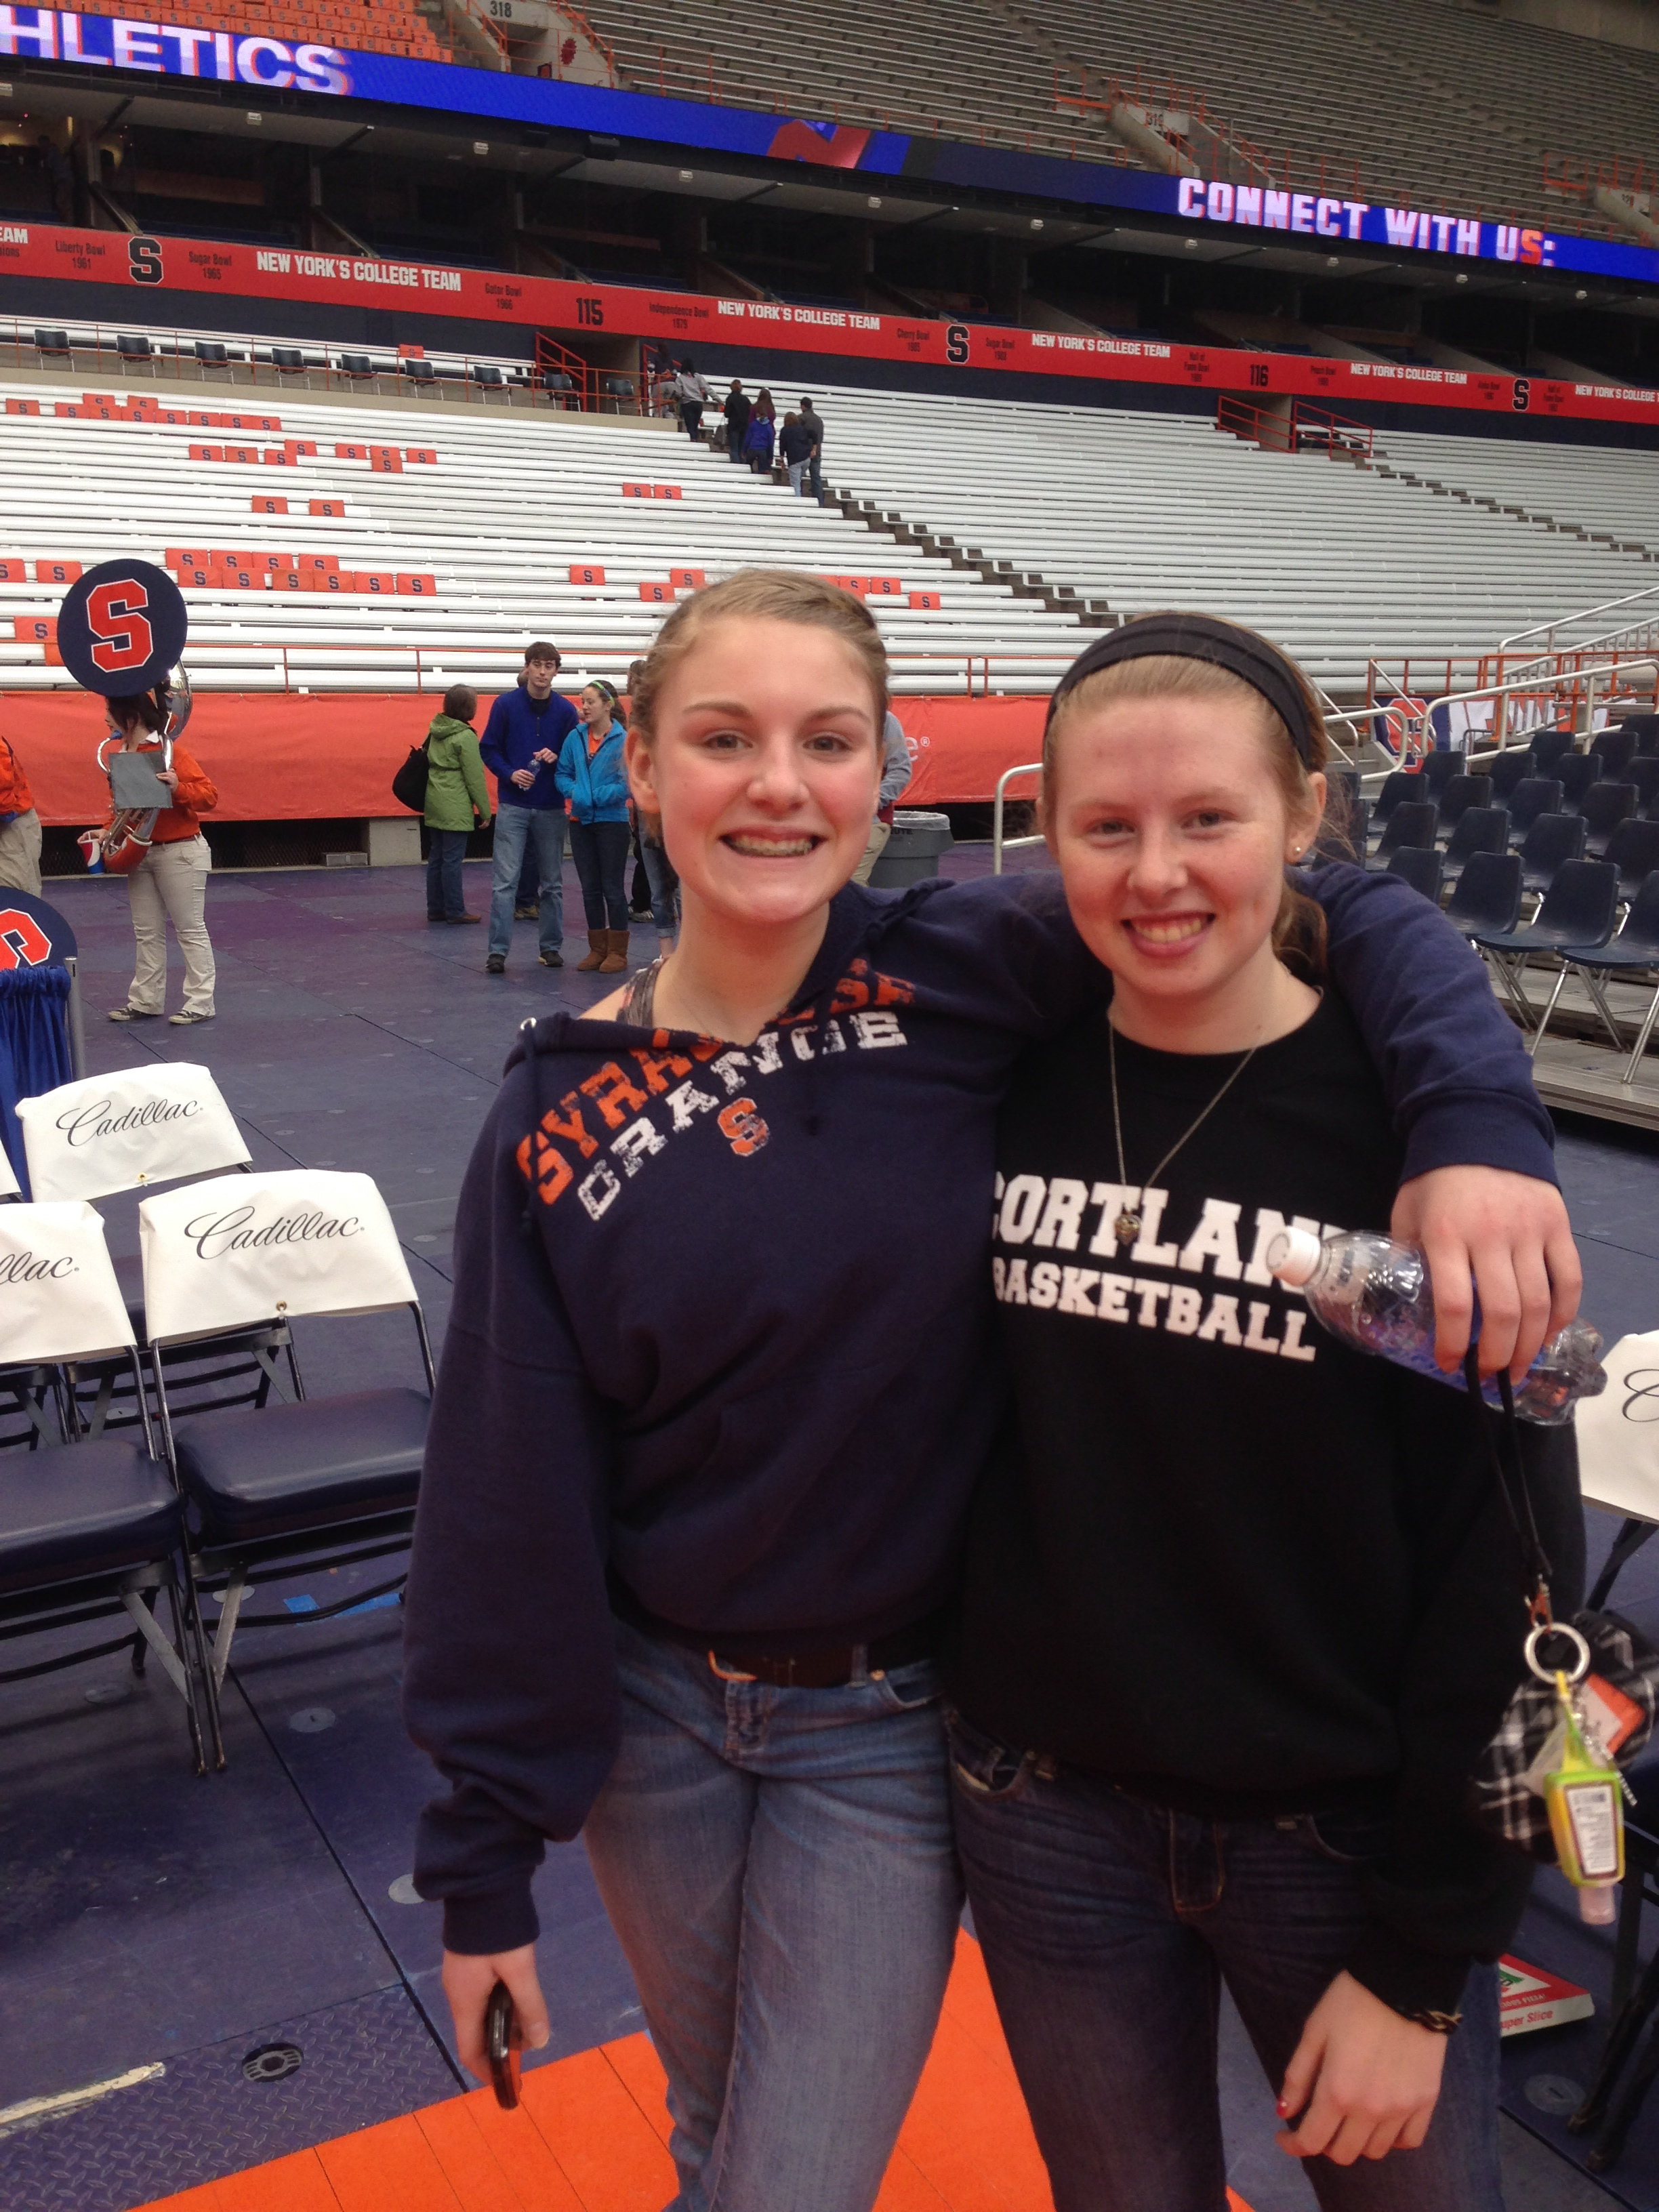 Gal pals at the Dome